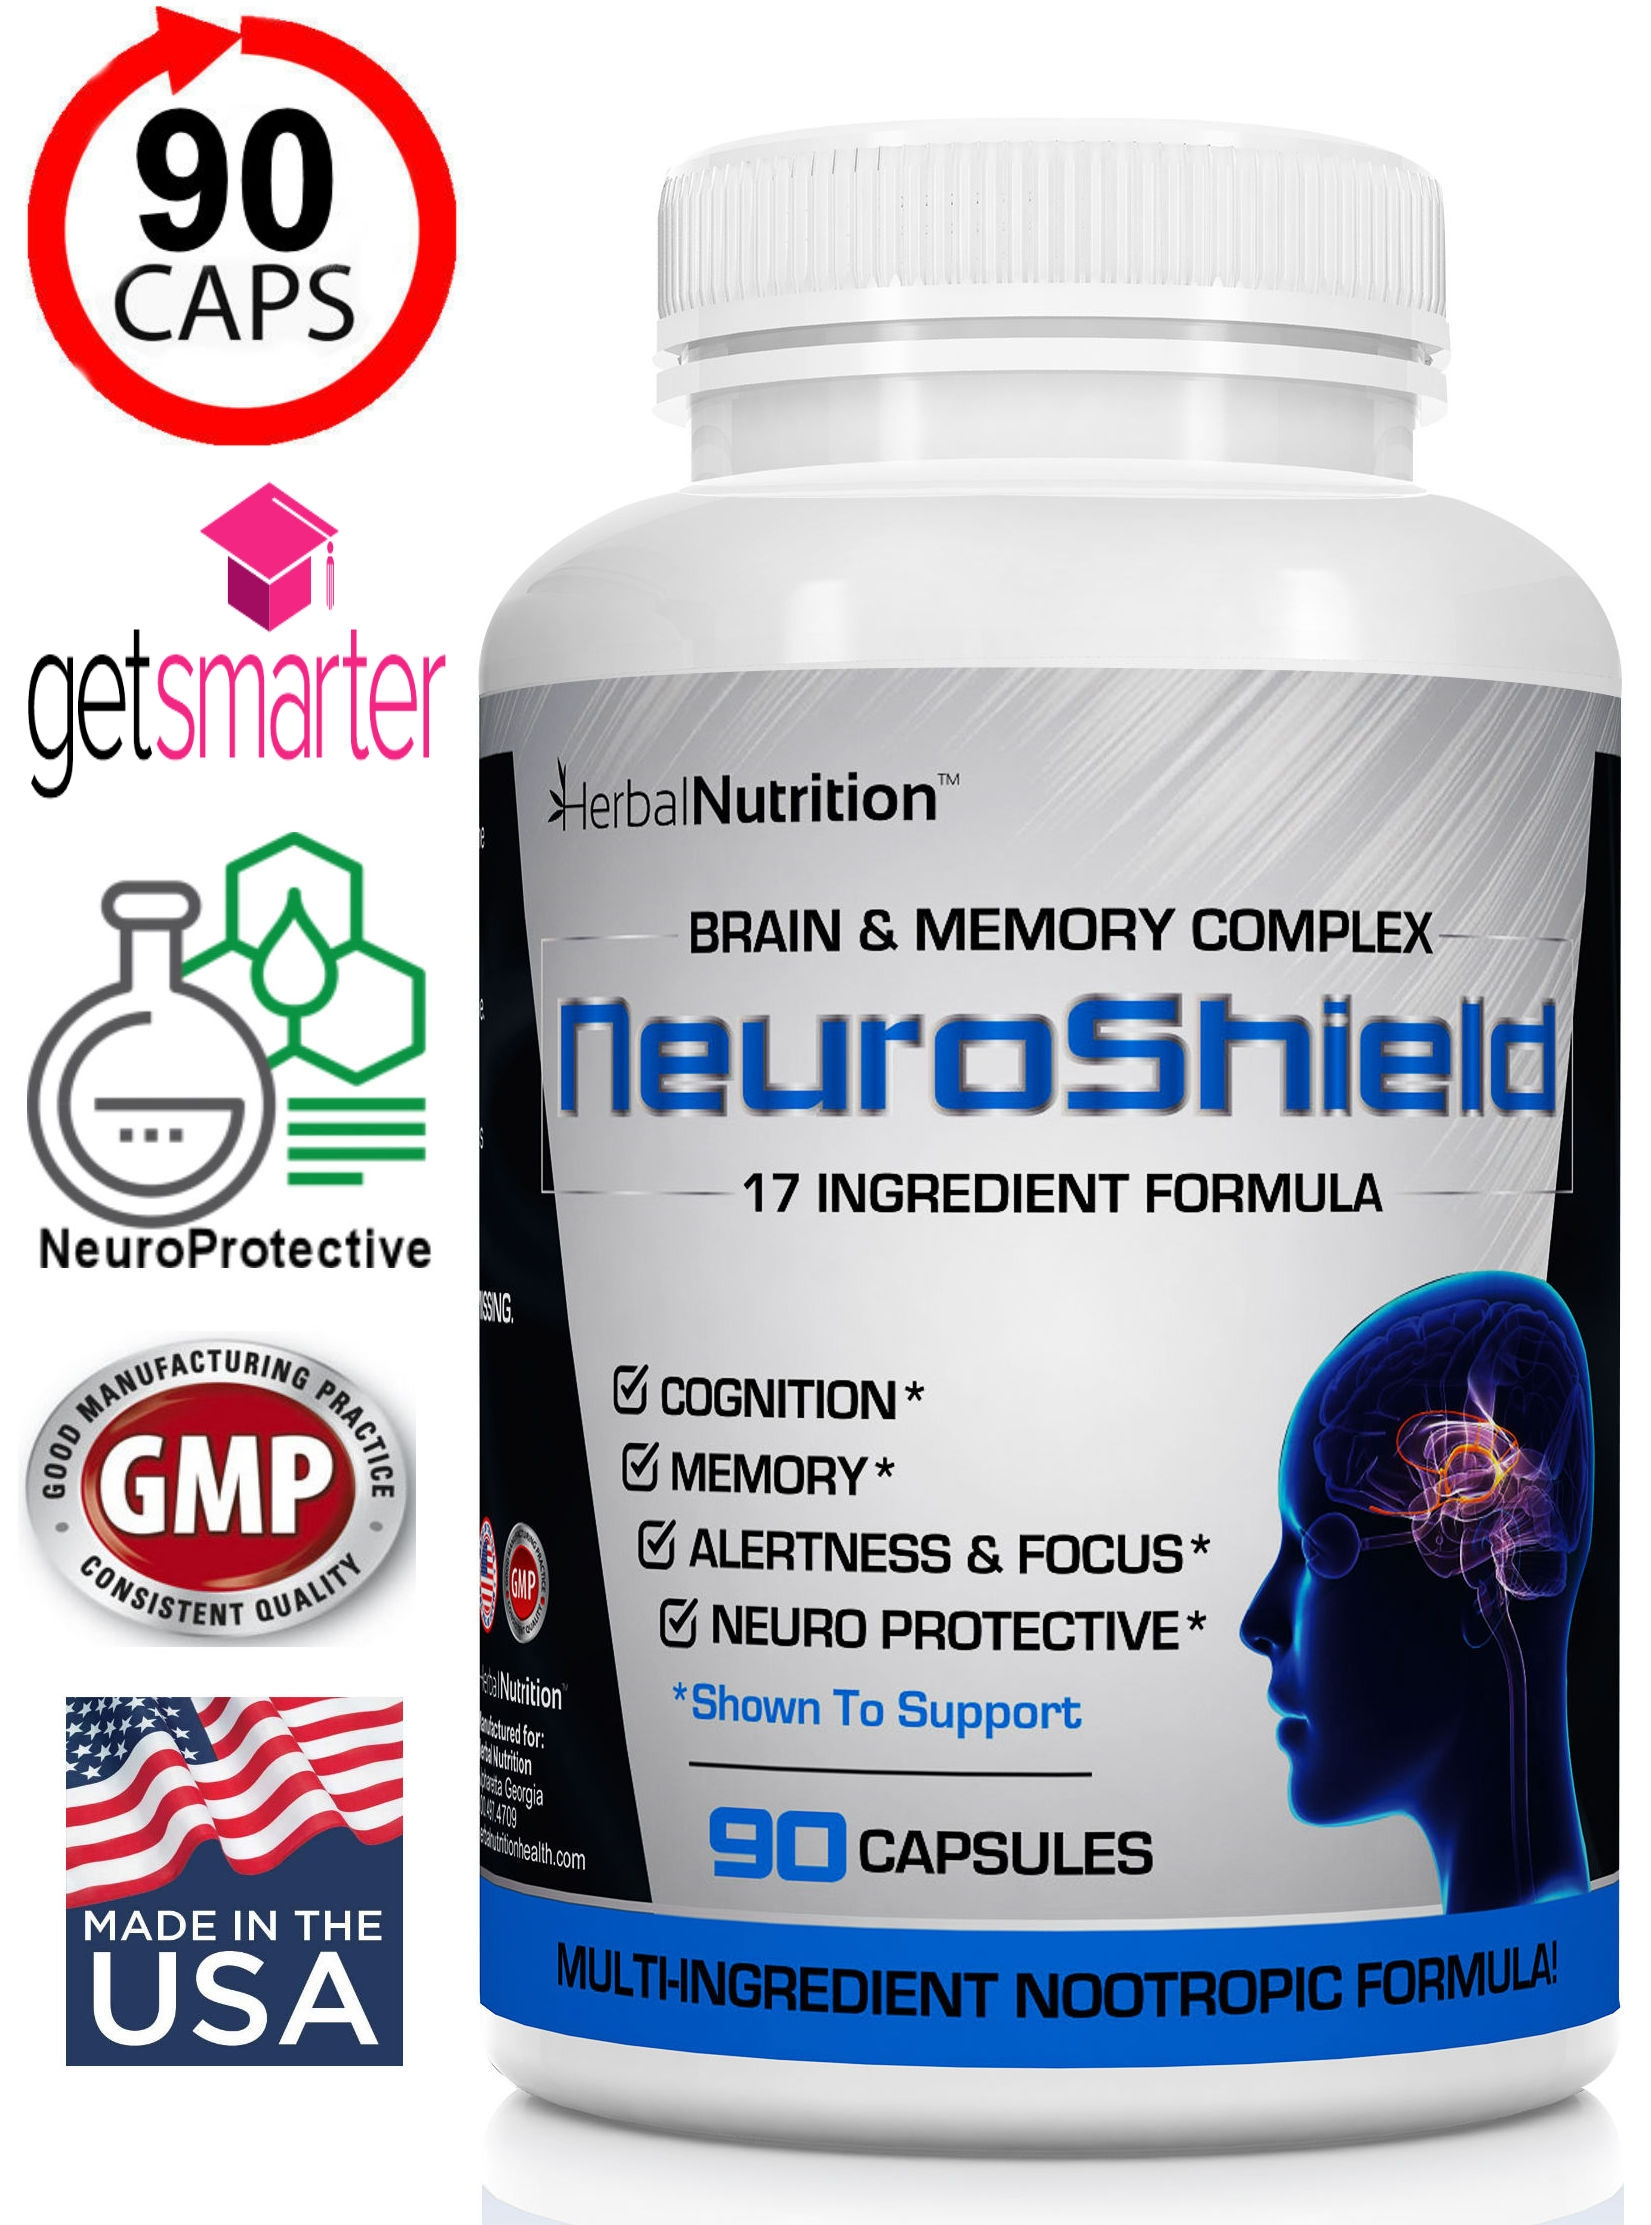 Neuroshield Brain & Memory Formula